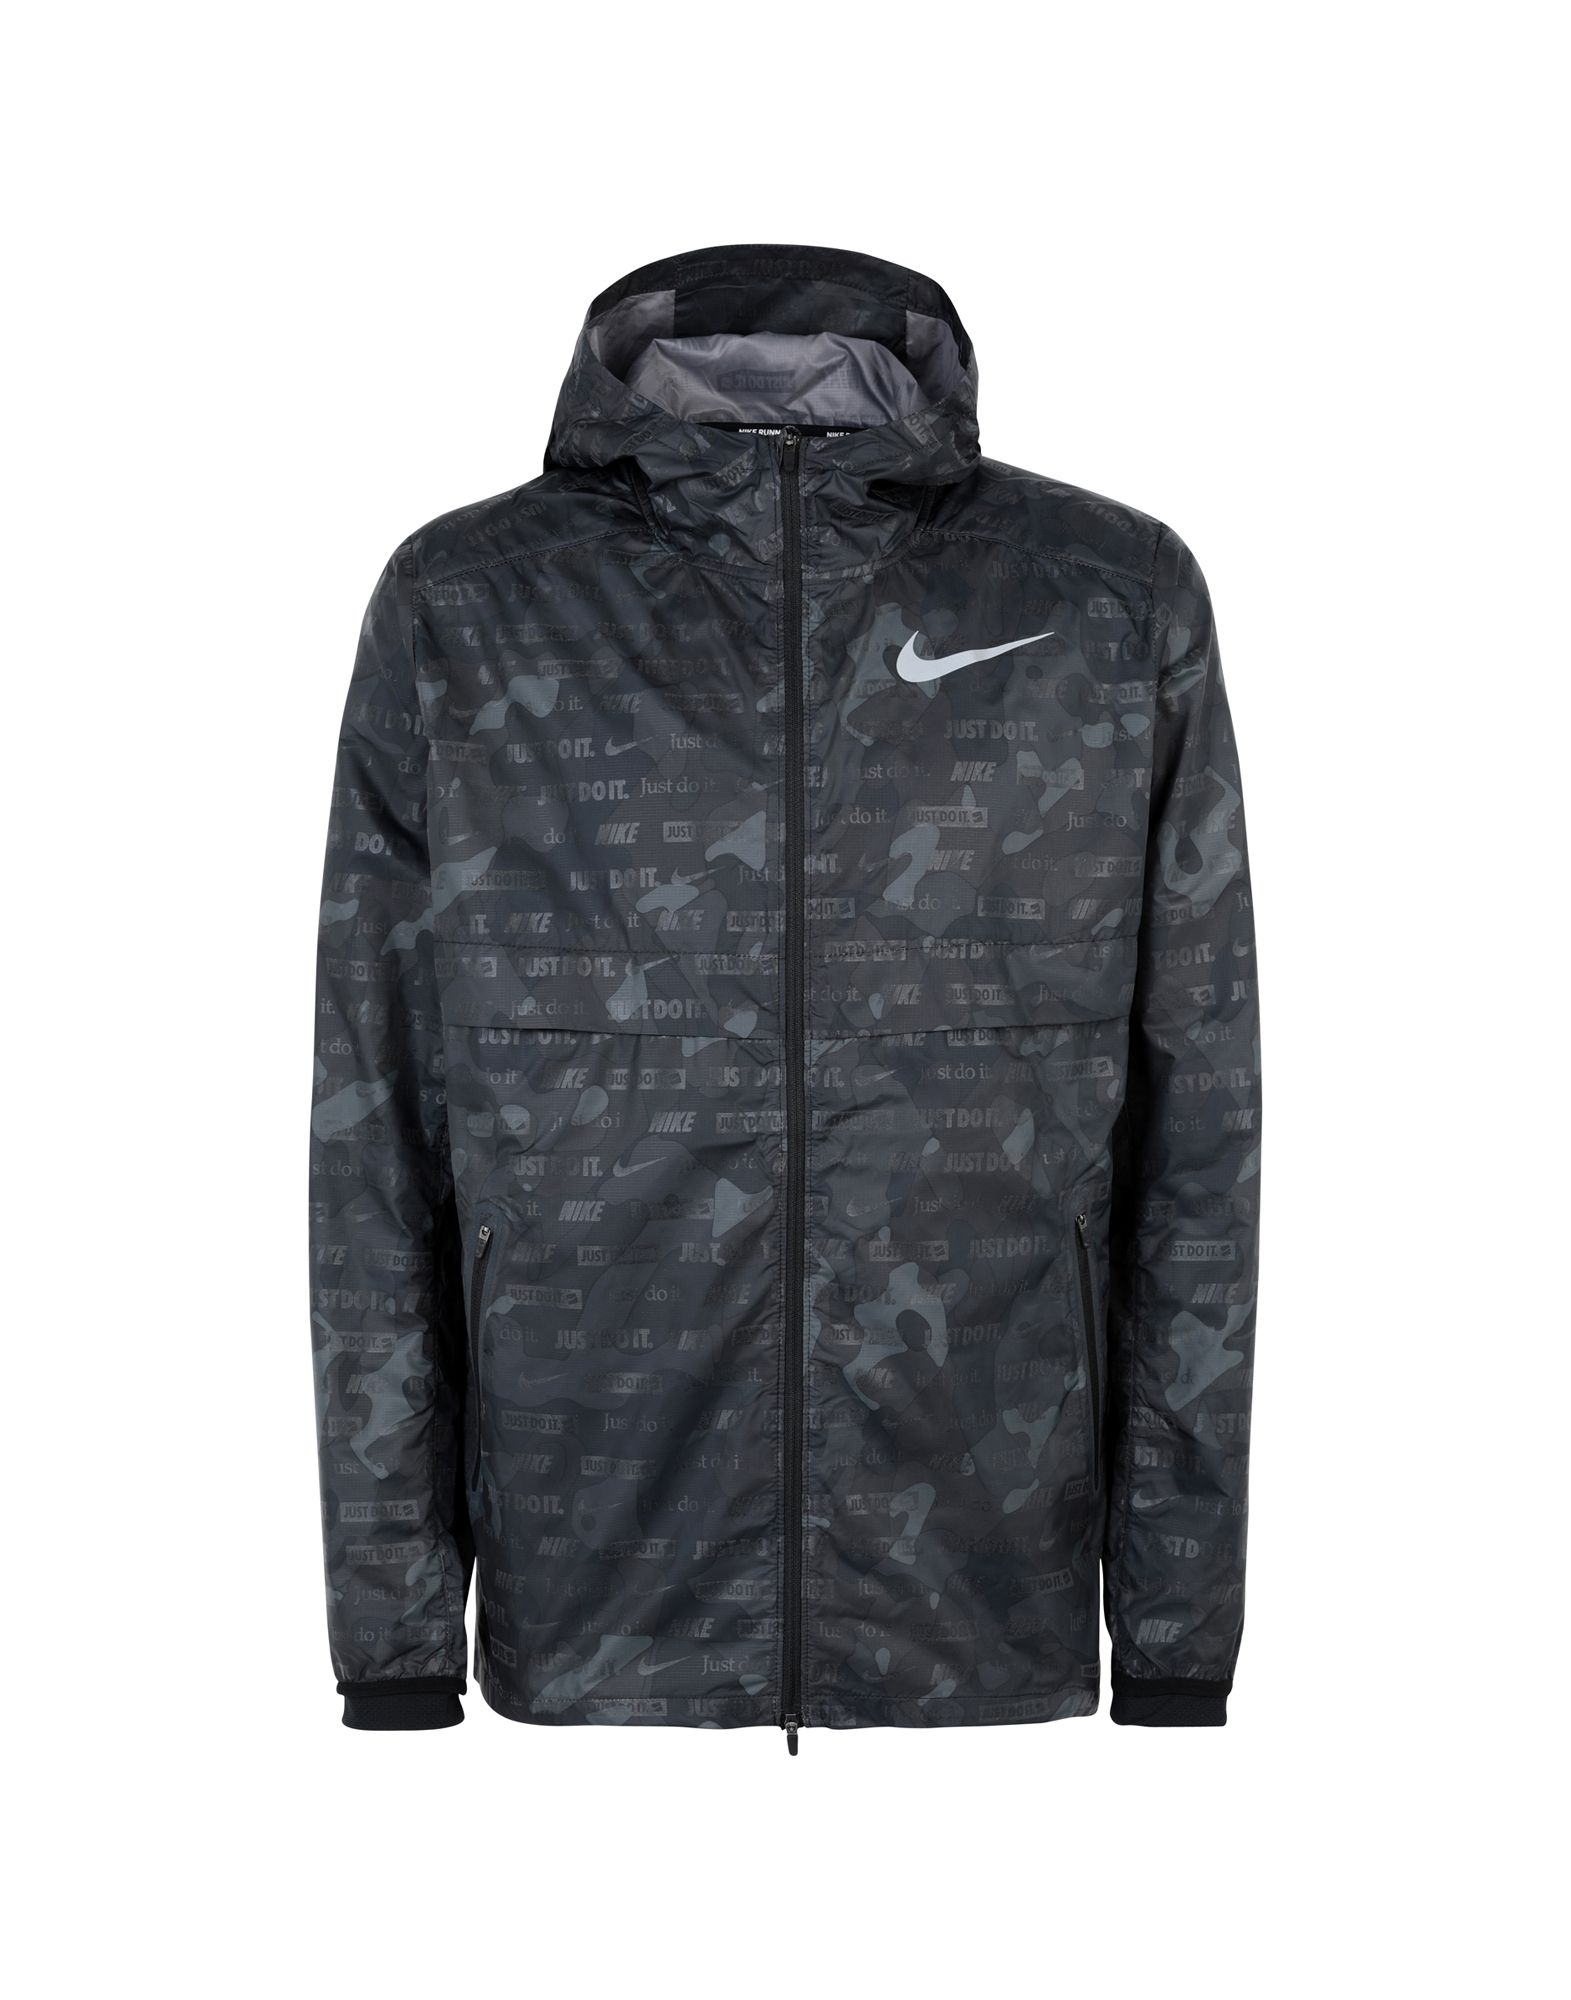 Nike Shield Ghost Camo Jacket - Jacket - Men Nike Jackets online on ... ce8bc7a37